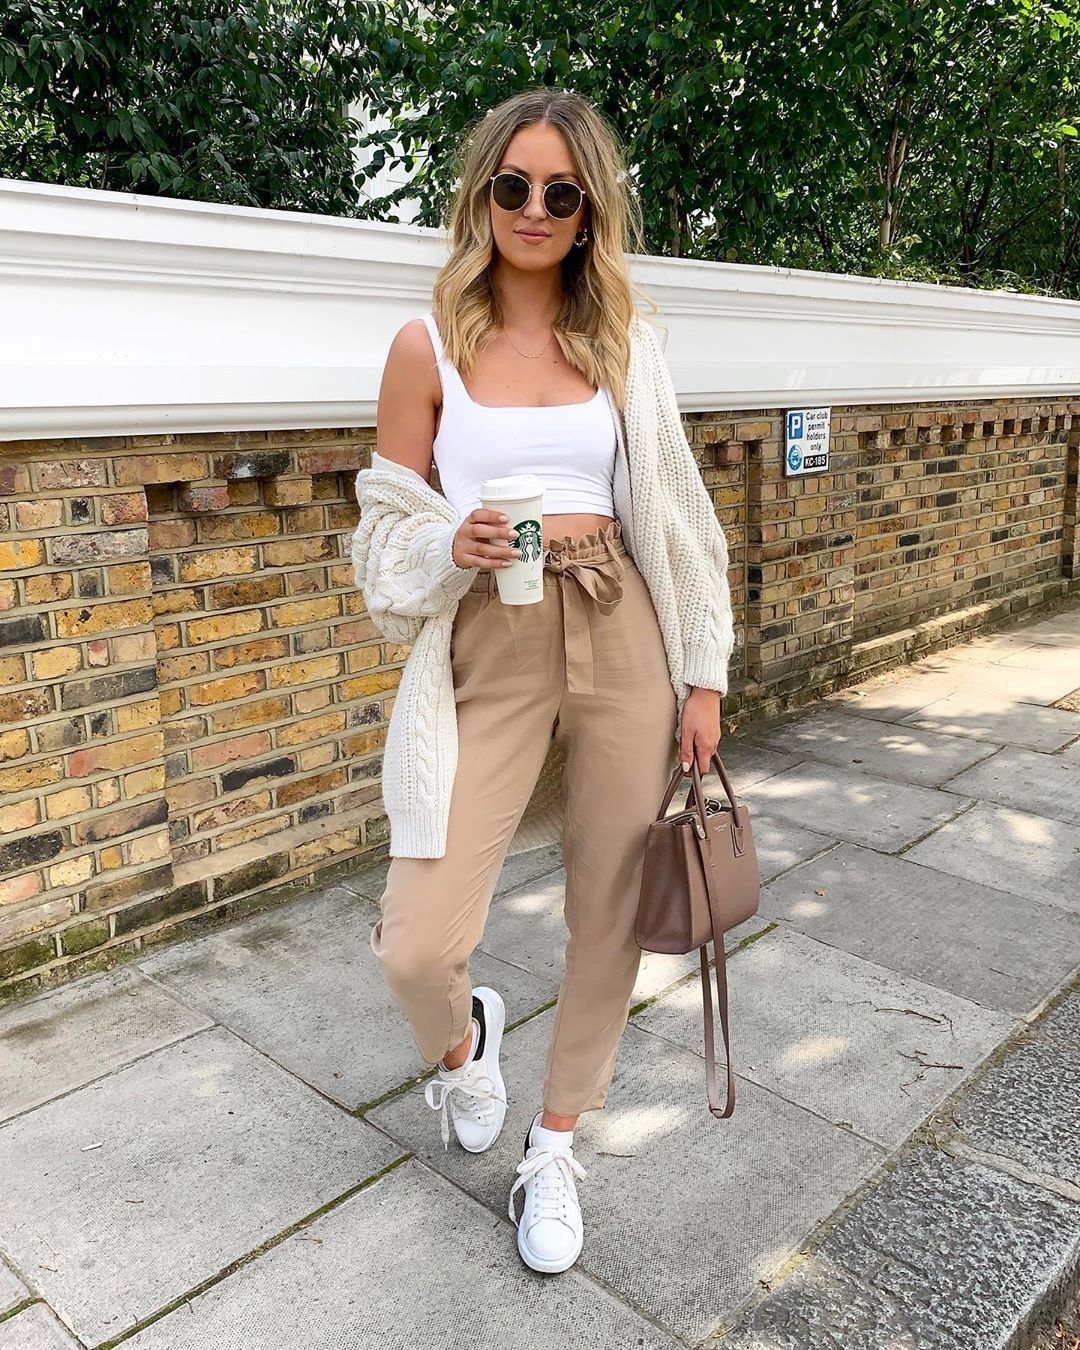 Jeans For Women Work Trousers Cute Gym Outfits Best Jeans For Curvy Women Black Striped Trousers